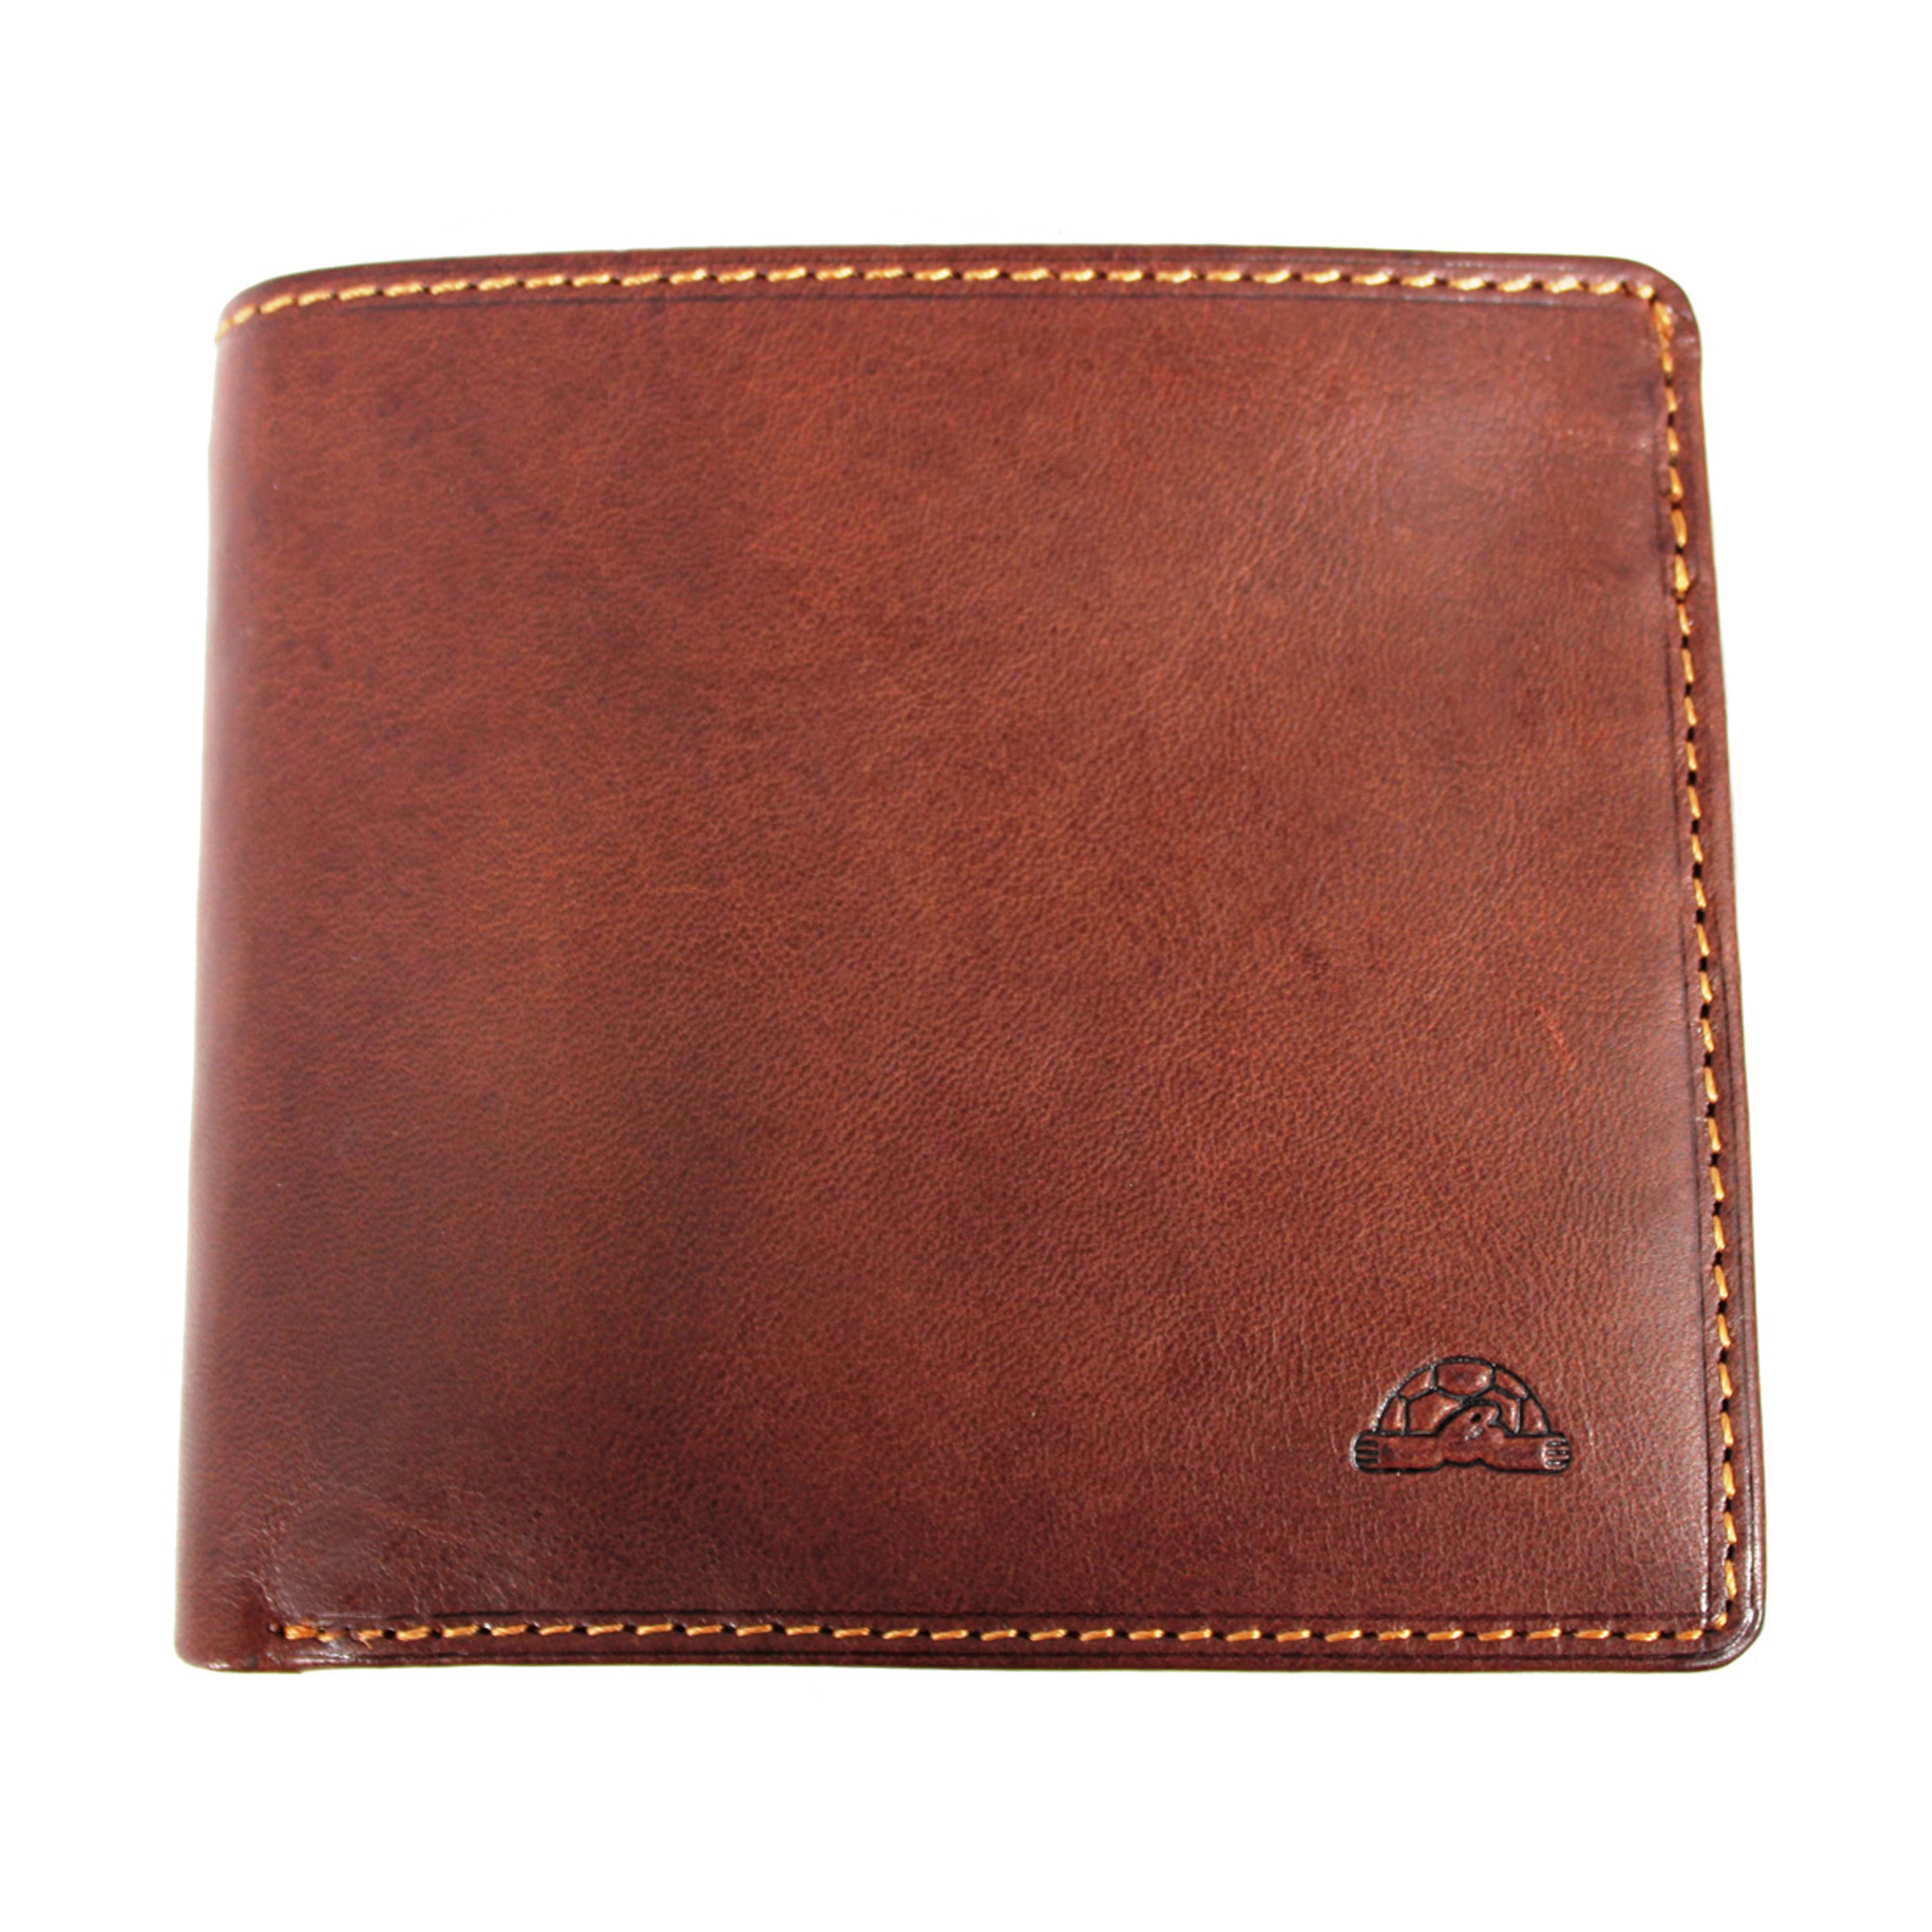 Tony Perotti Italian Leather Trifold Wallet BROWN